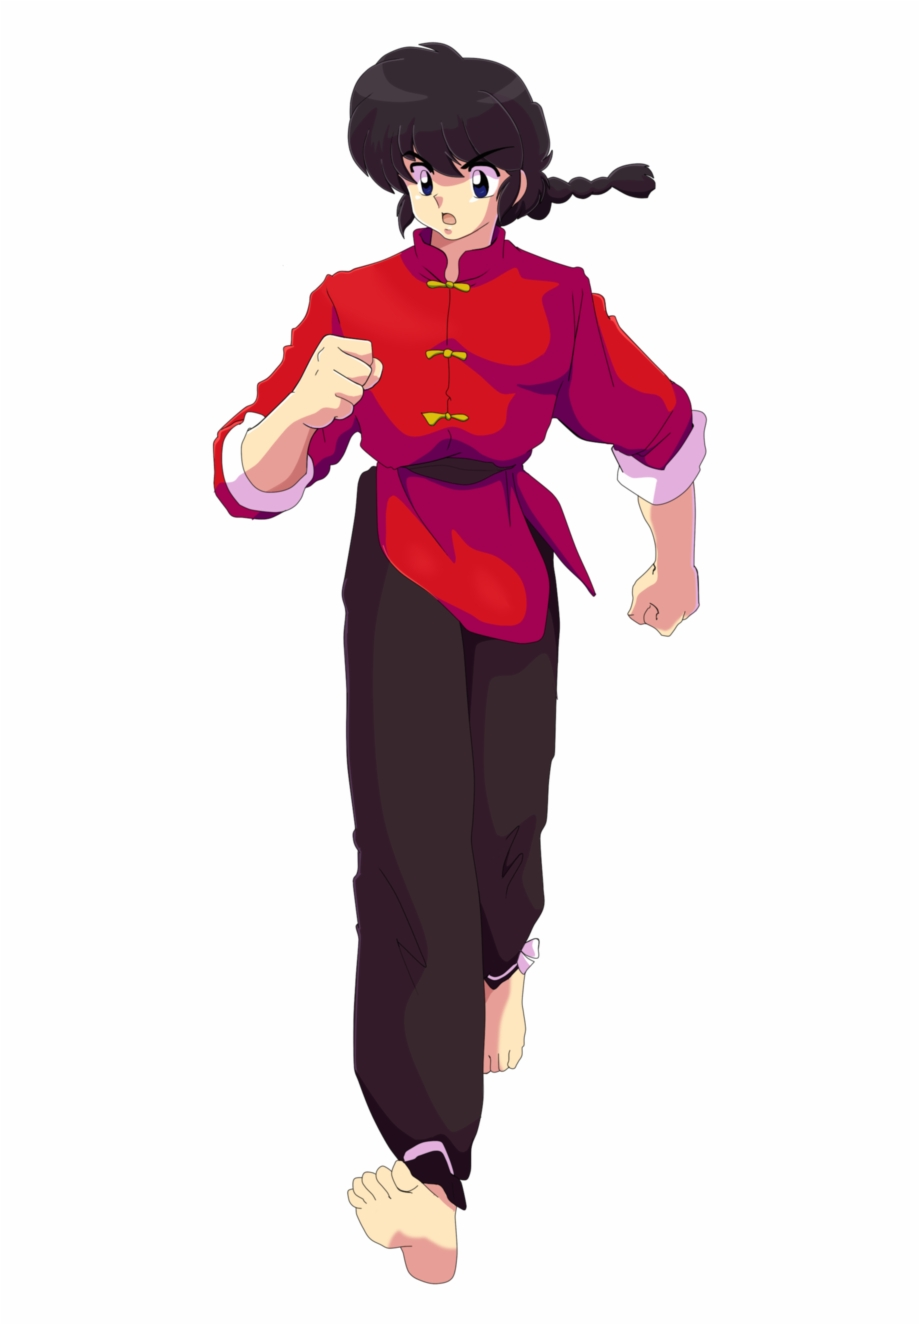 Ranma Saotome Png, Transparent Png Download For Free.